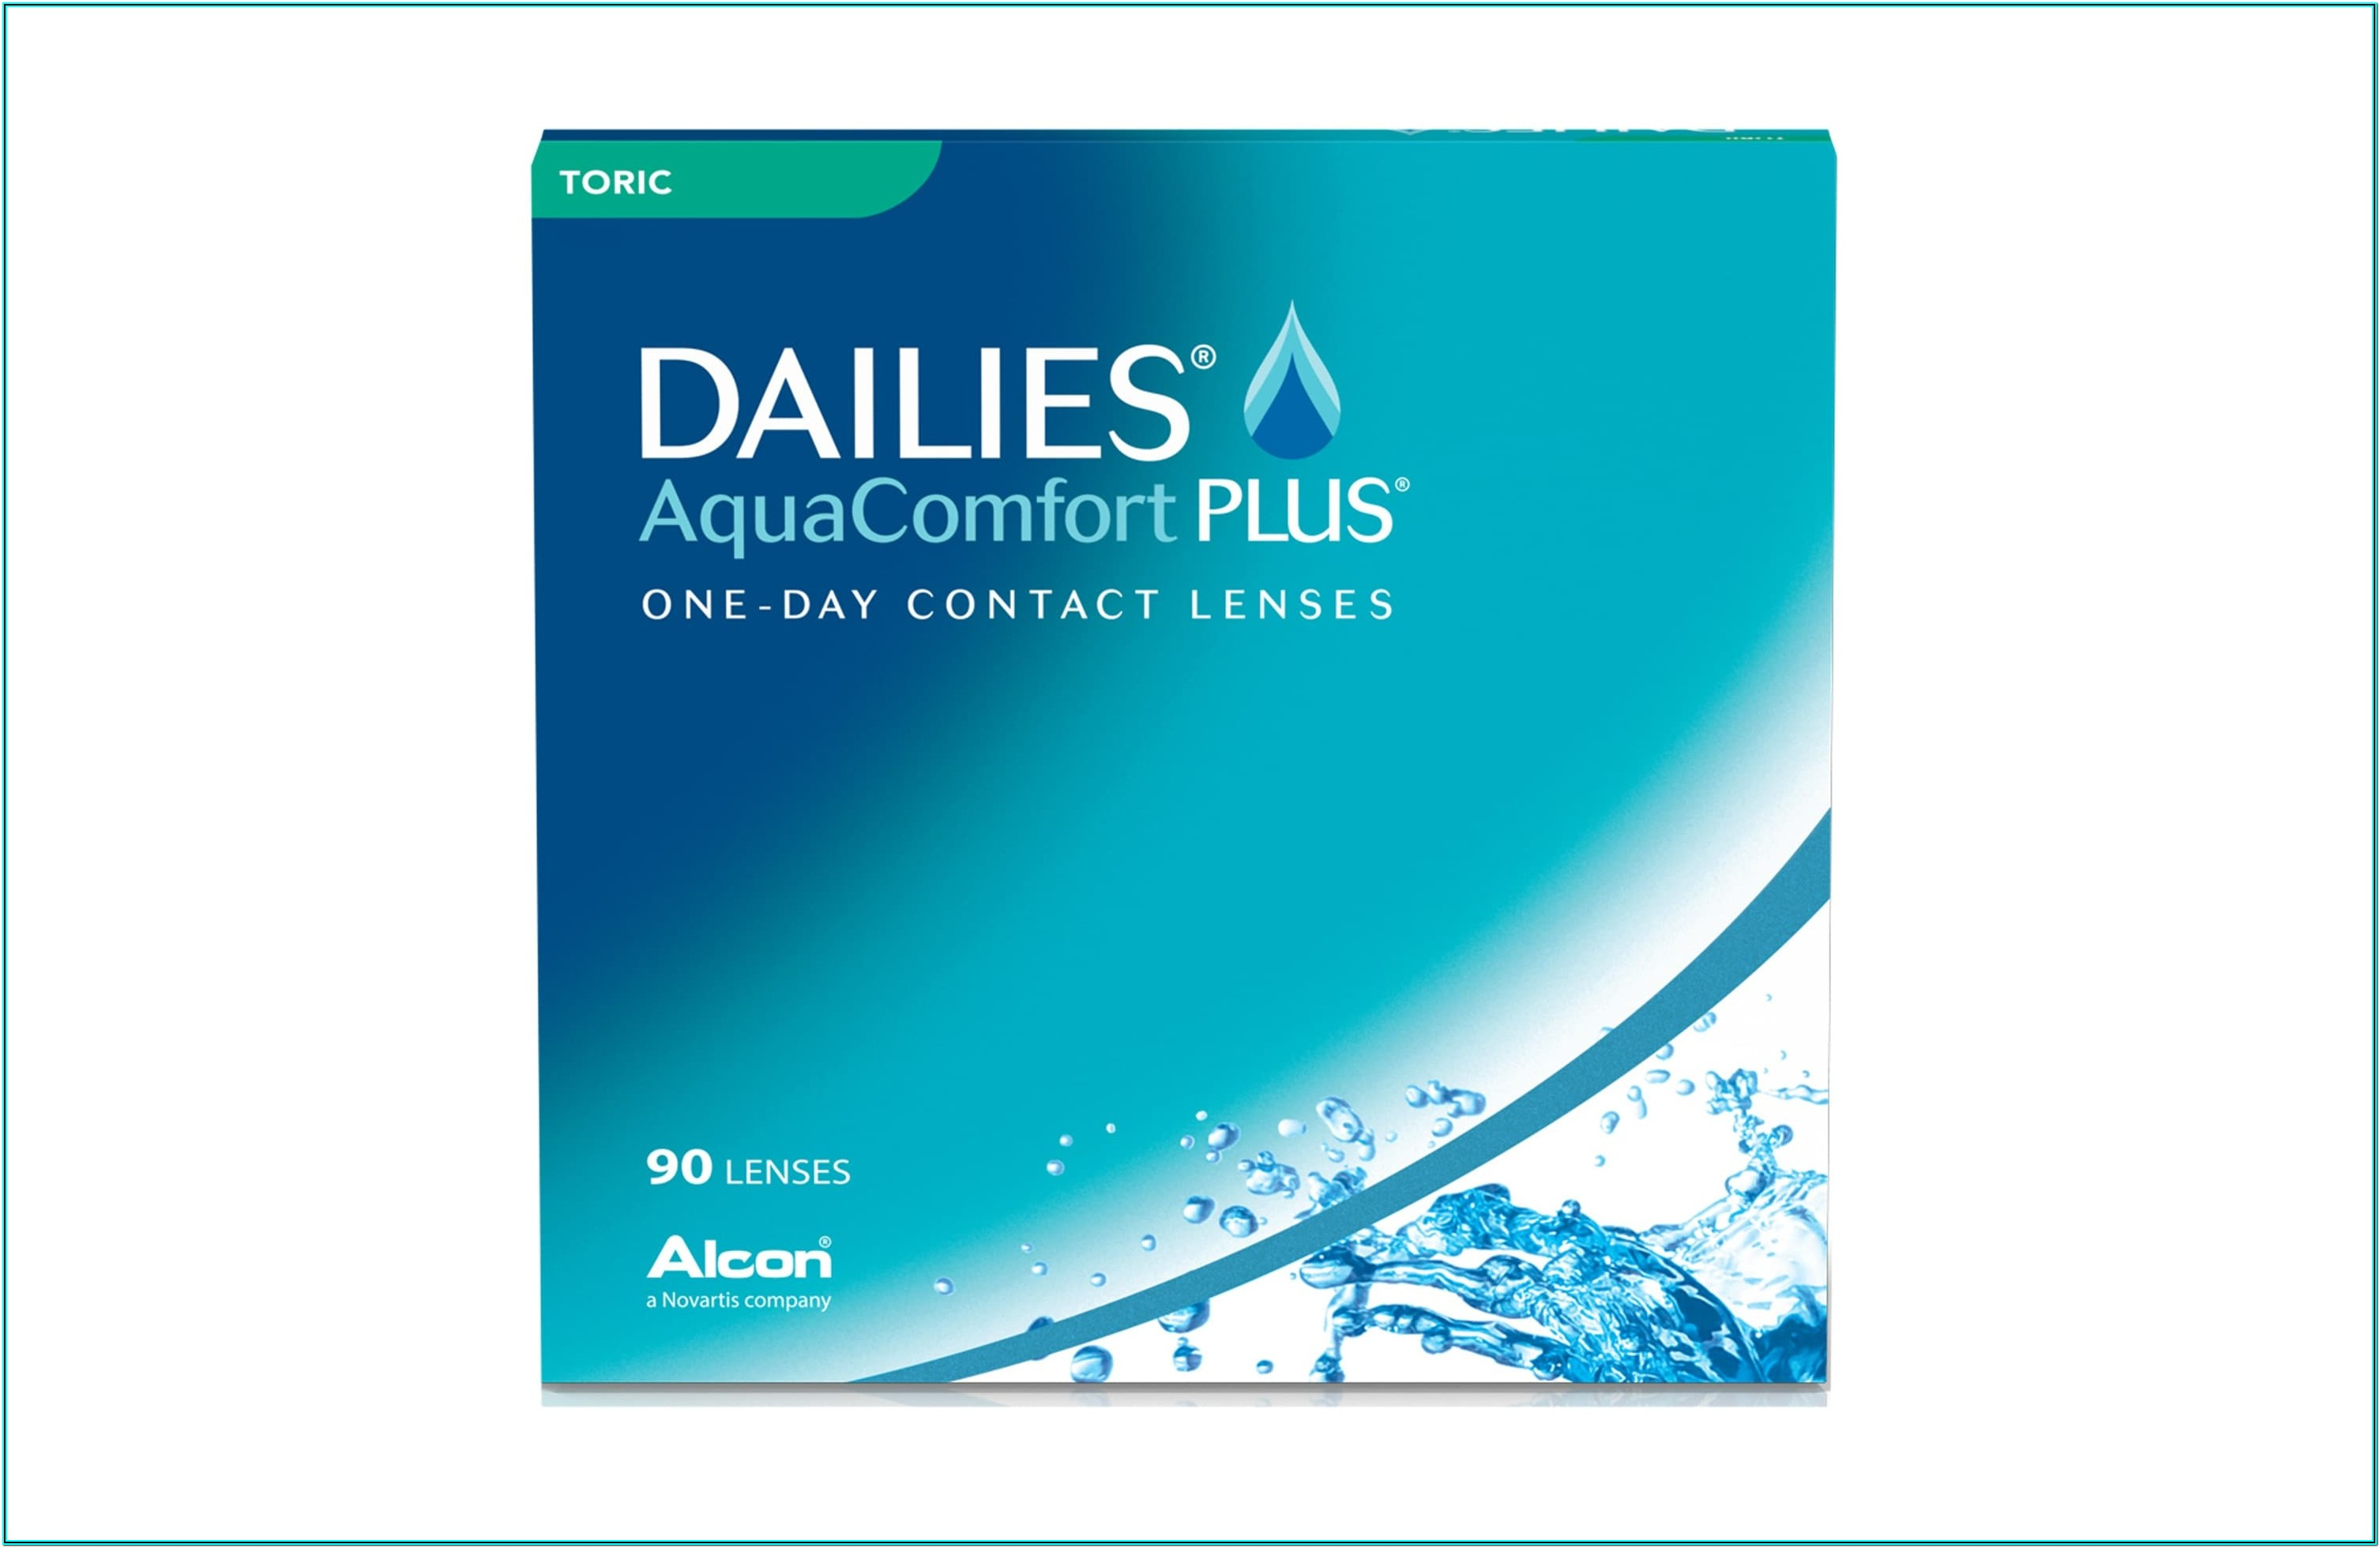 Dailies Aquacomfort Plus Rebate Form 2019